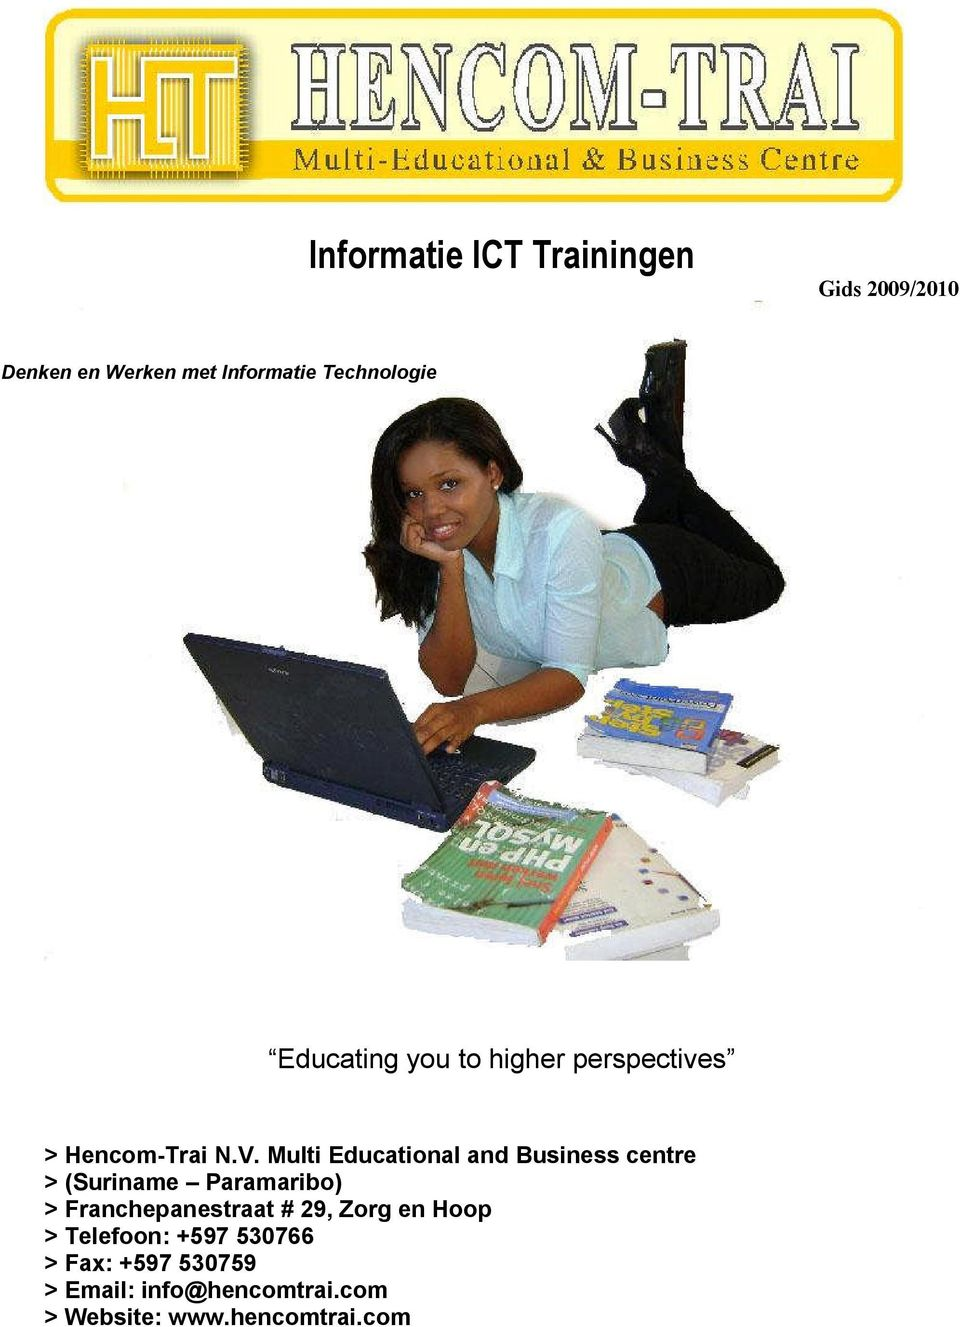 Multi Educational and Business centre > (Suriname Paramaribo) > Franchepanestraat #